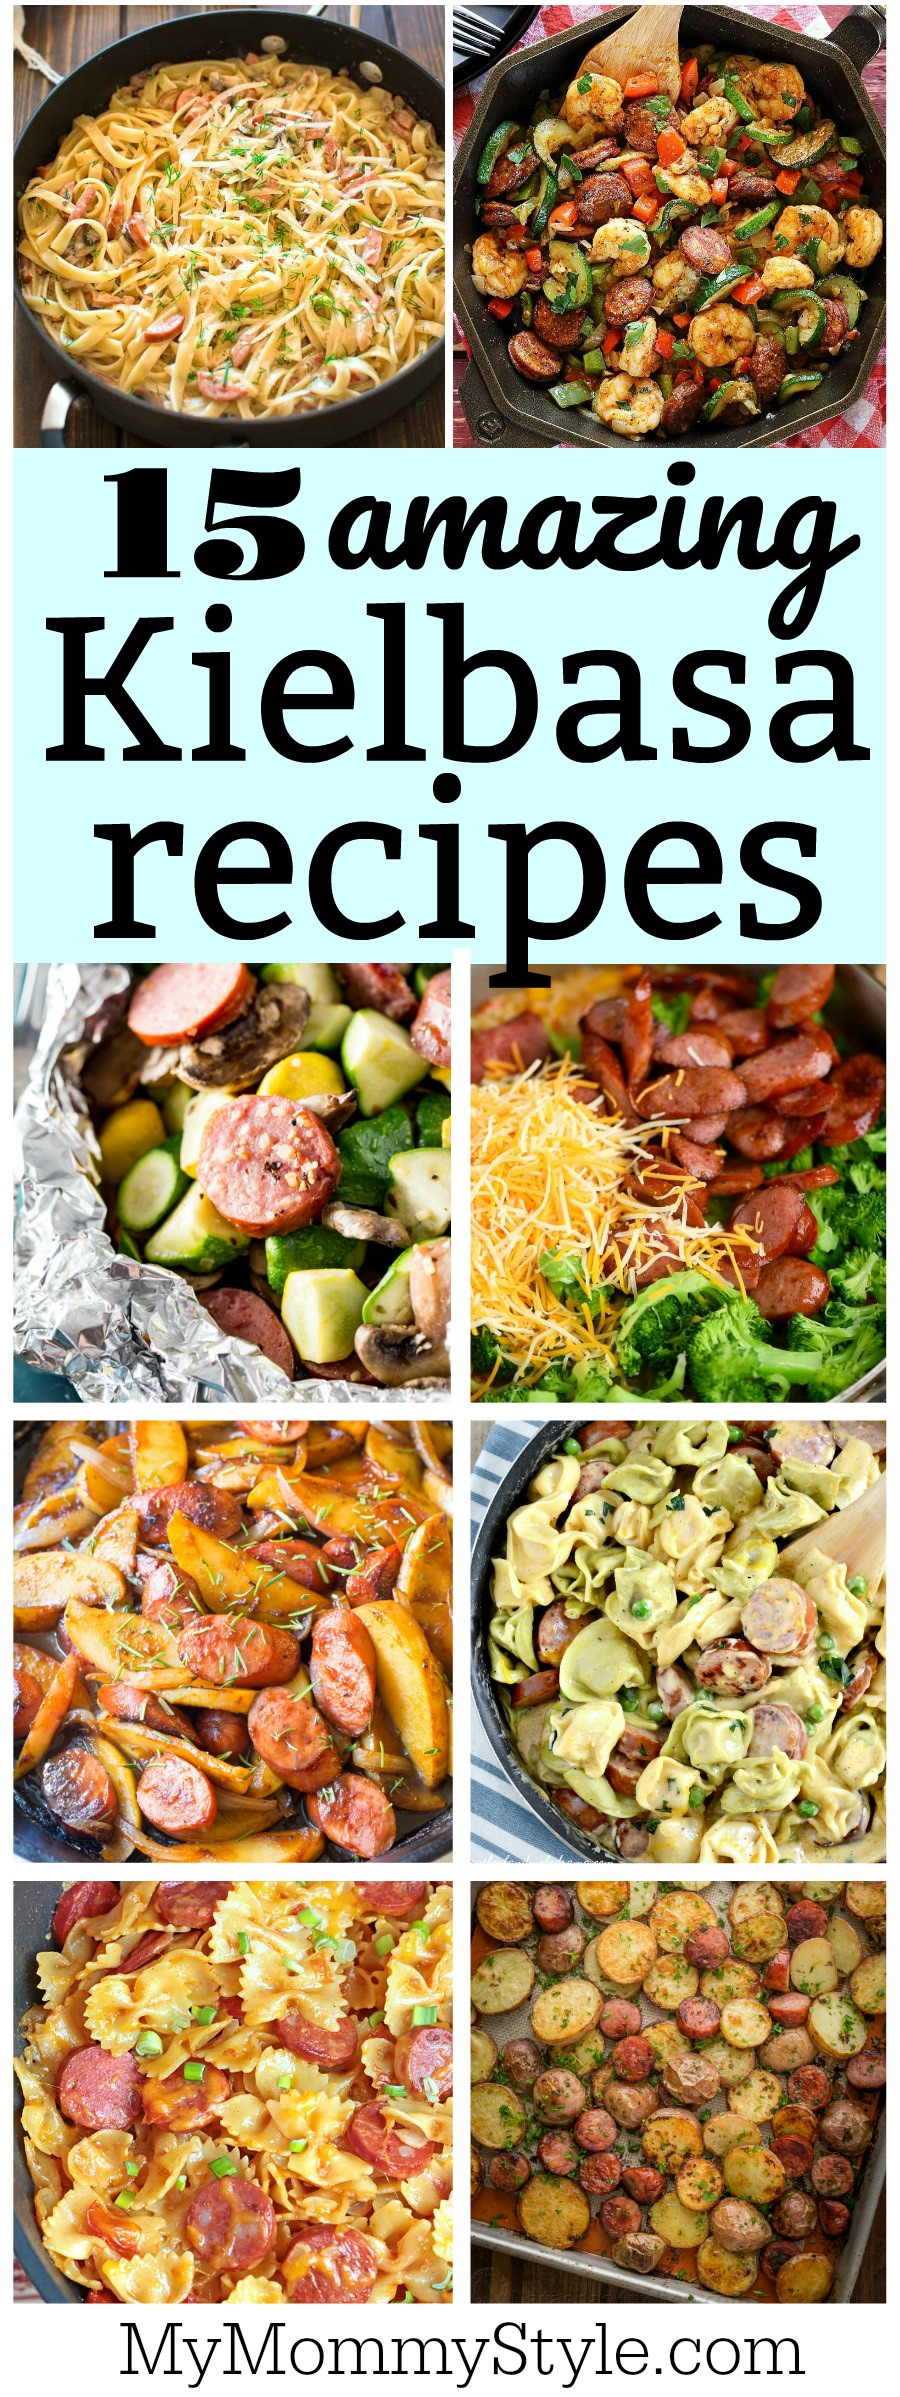 Learn how to cook kielbasa with these delicious recipes. This is a list of our favorite 15 incredible kielbasa recipes put together in one place. #howtocookkielbasa #cookingkielbasa #bestwaytocookkielbasa #kielbasa via @mymommystyle